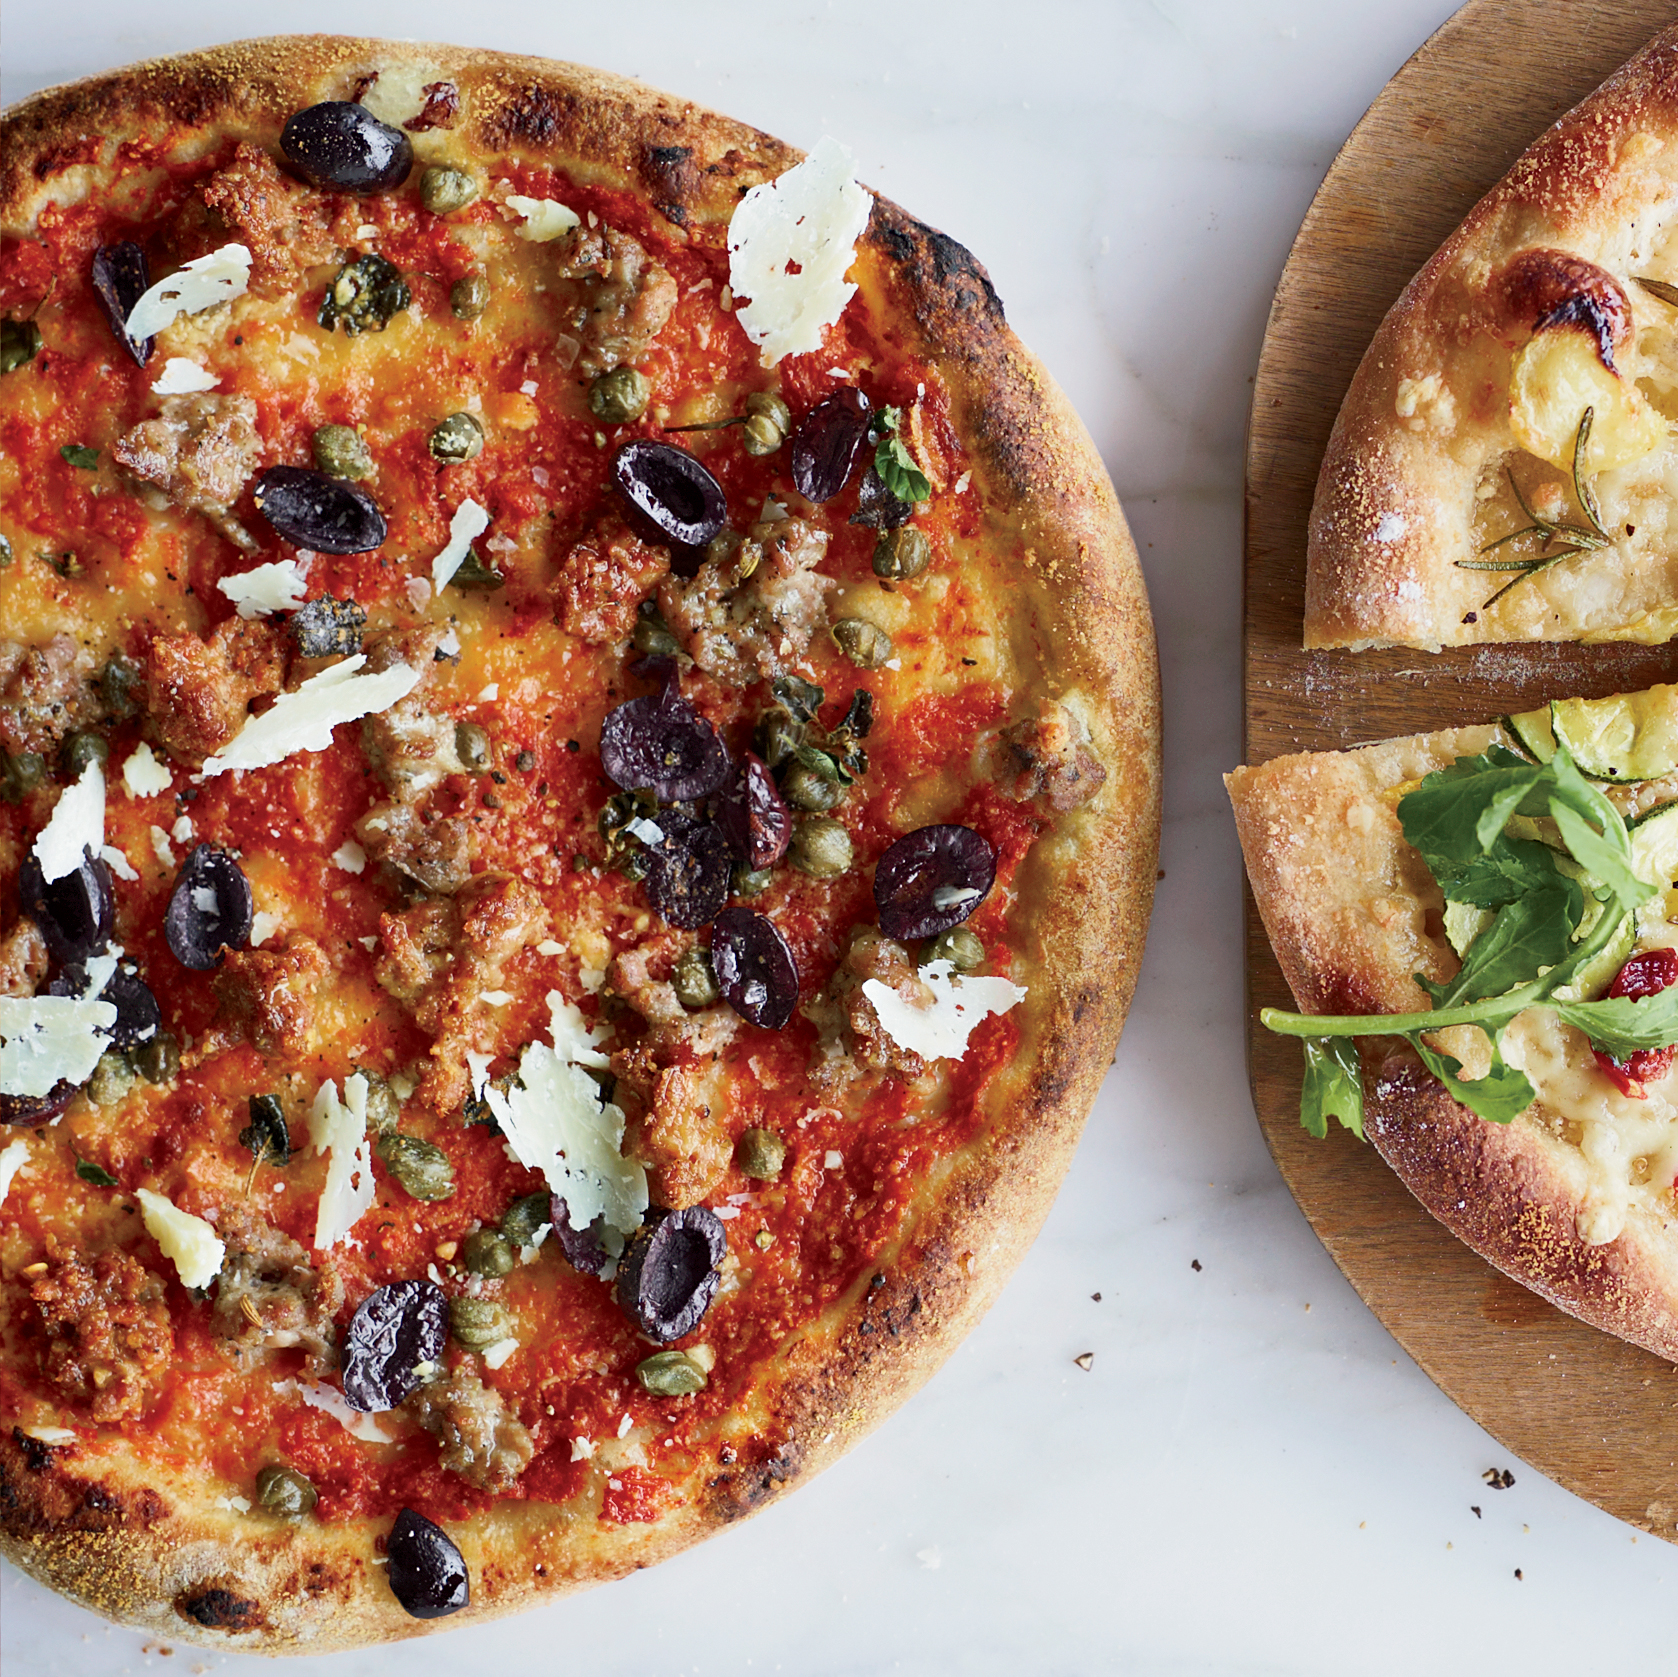 Sausage-and-Olive Pizza with Capers and Pecorino Sardo